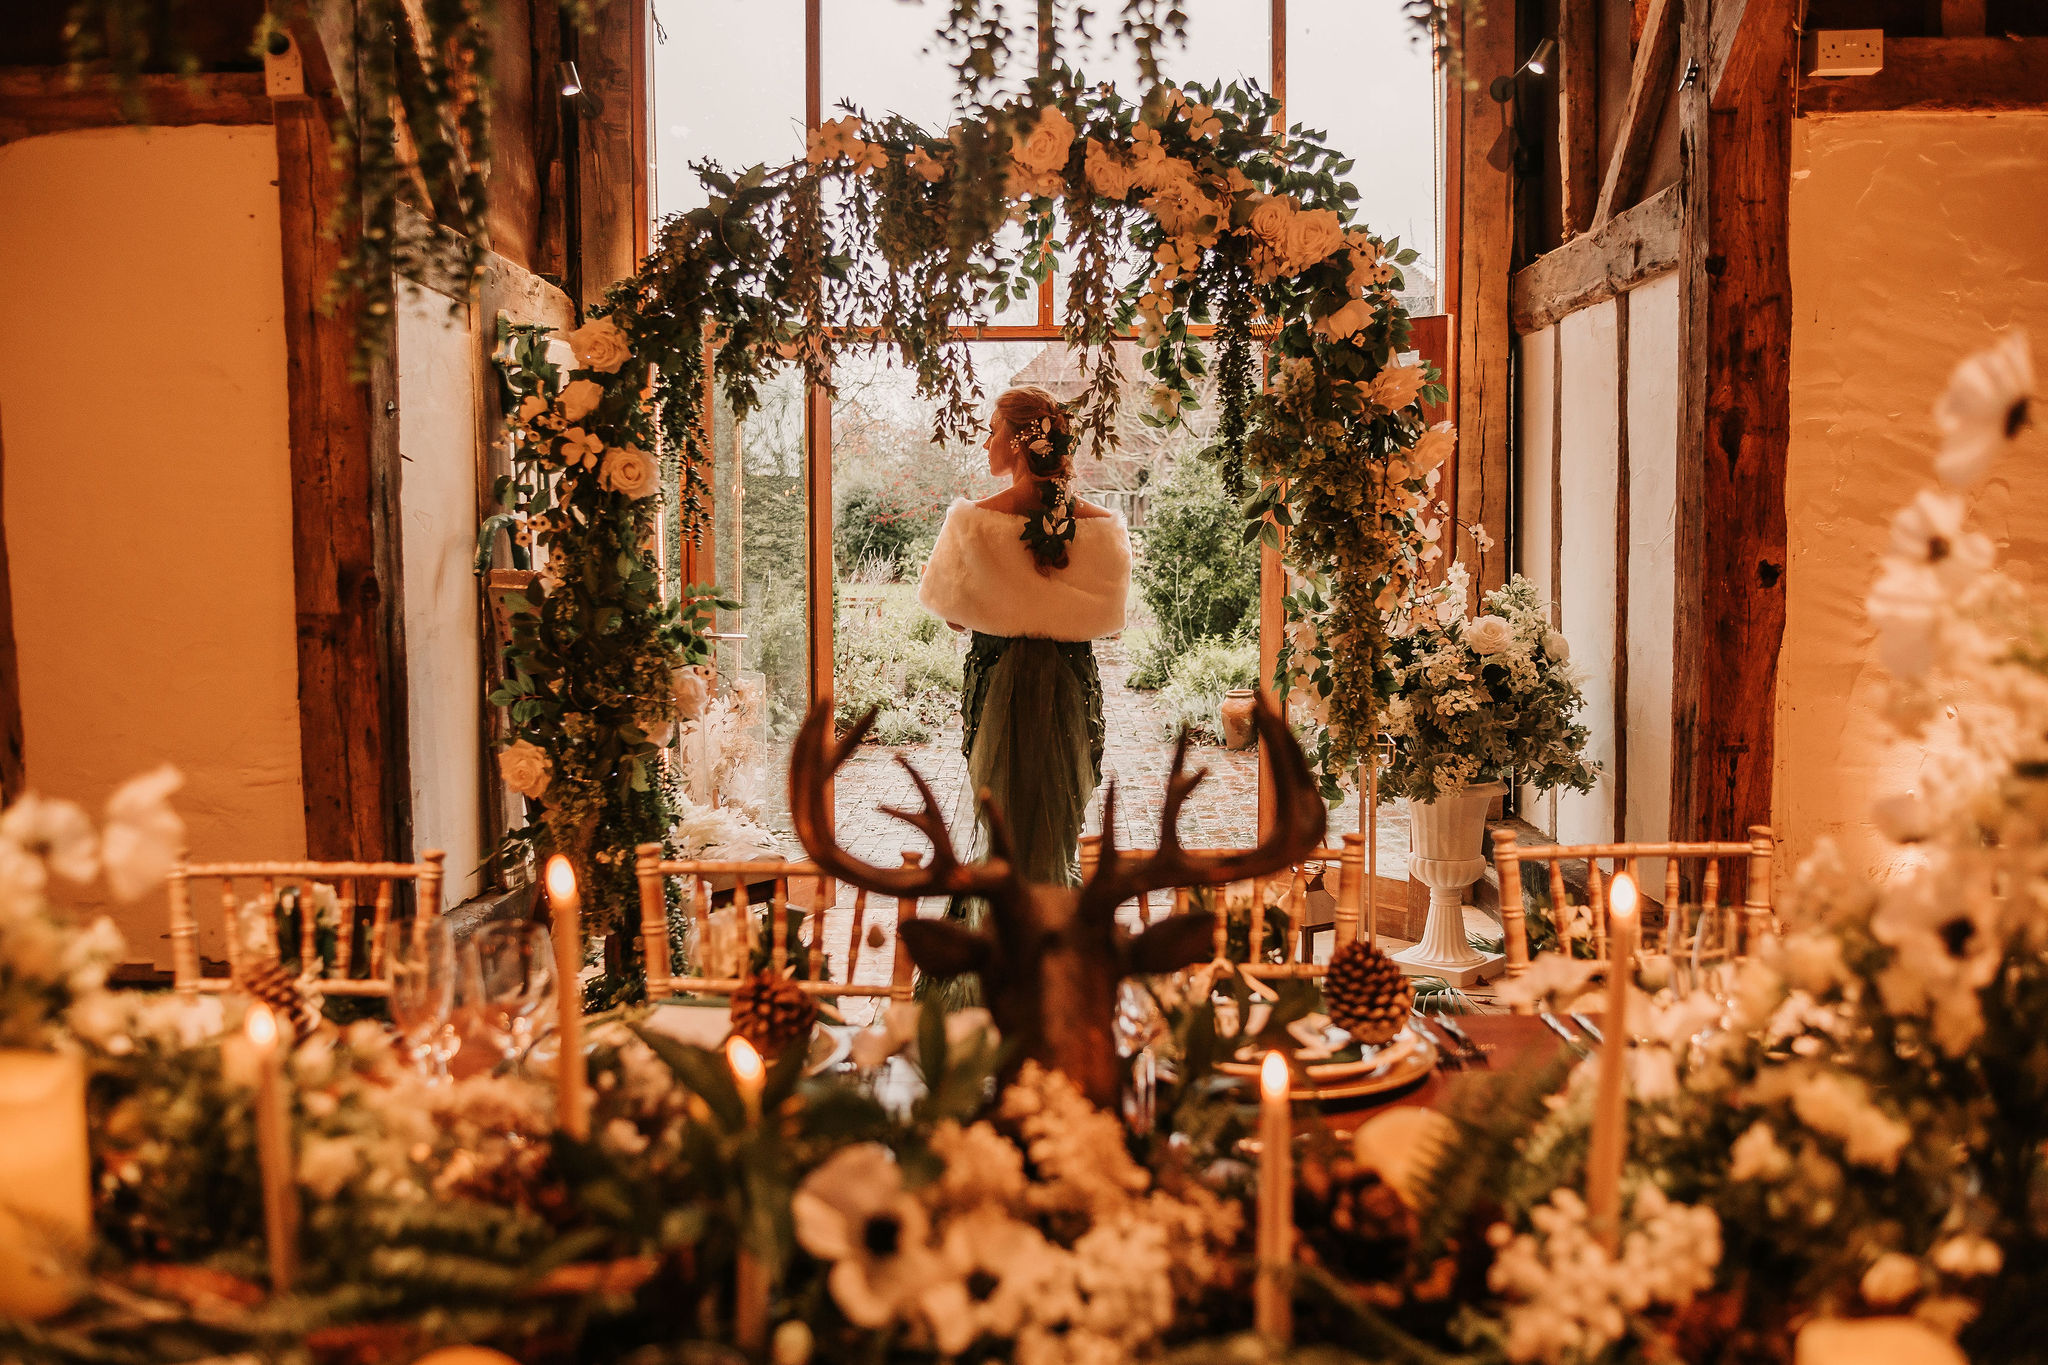 enchanting winter wedding - barn wedding venue - winter wedding styling - unconventional wedding